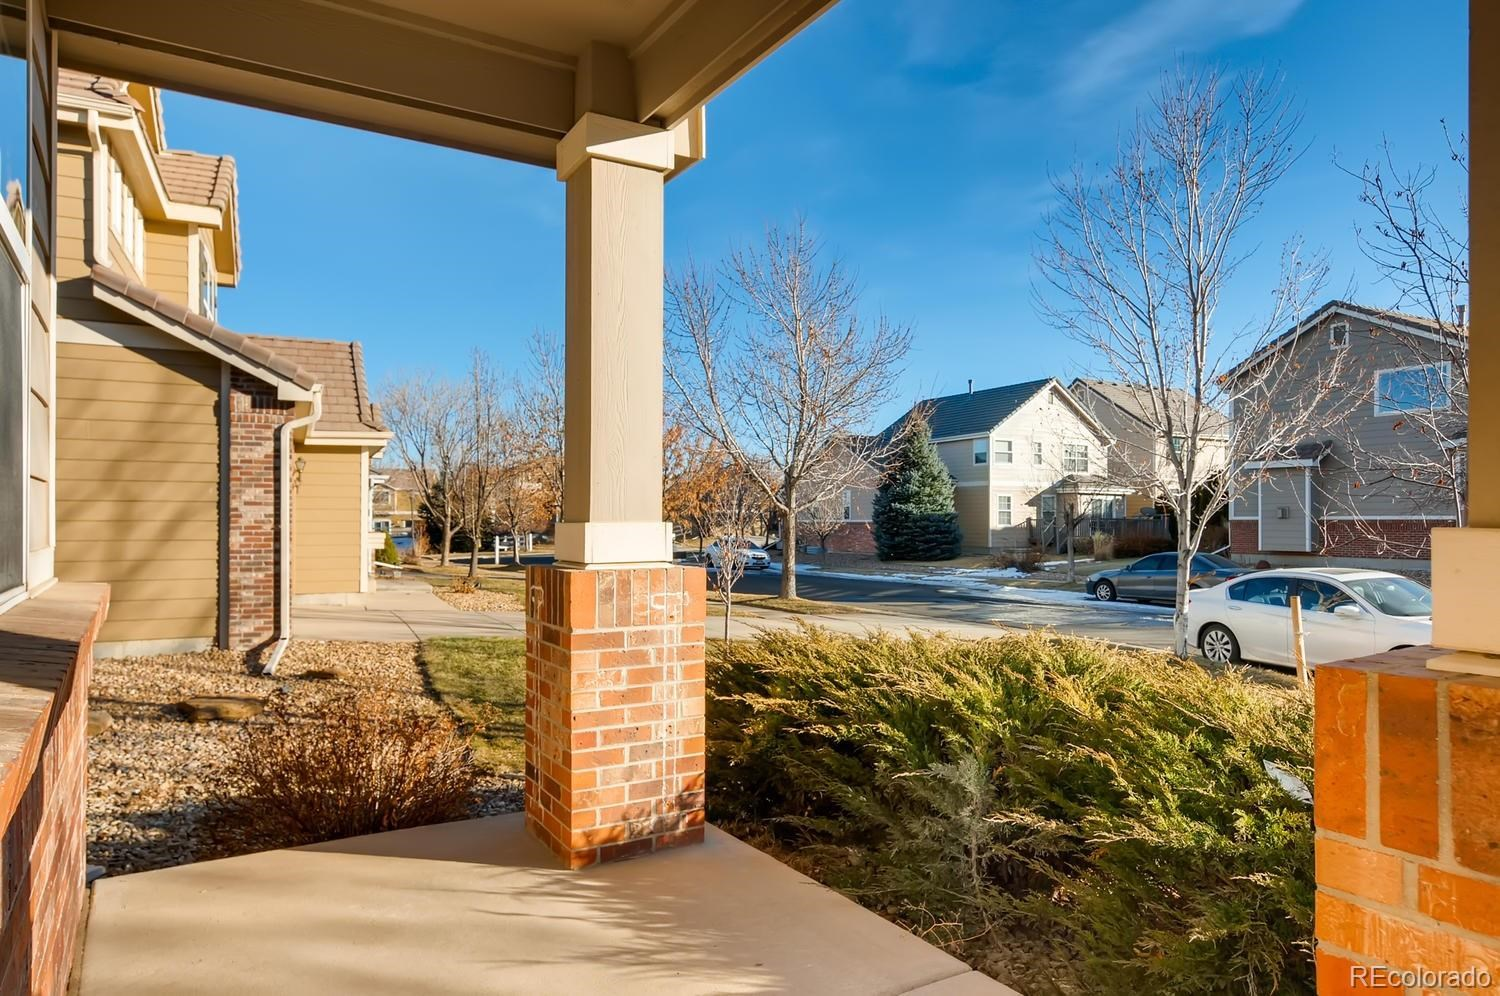 MLS# 4655945 - 4 - 24339 E Kansas Circle, Aurora, CO 80018